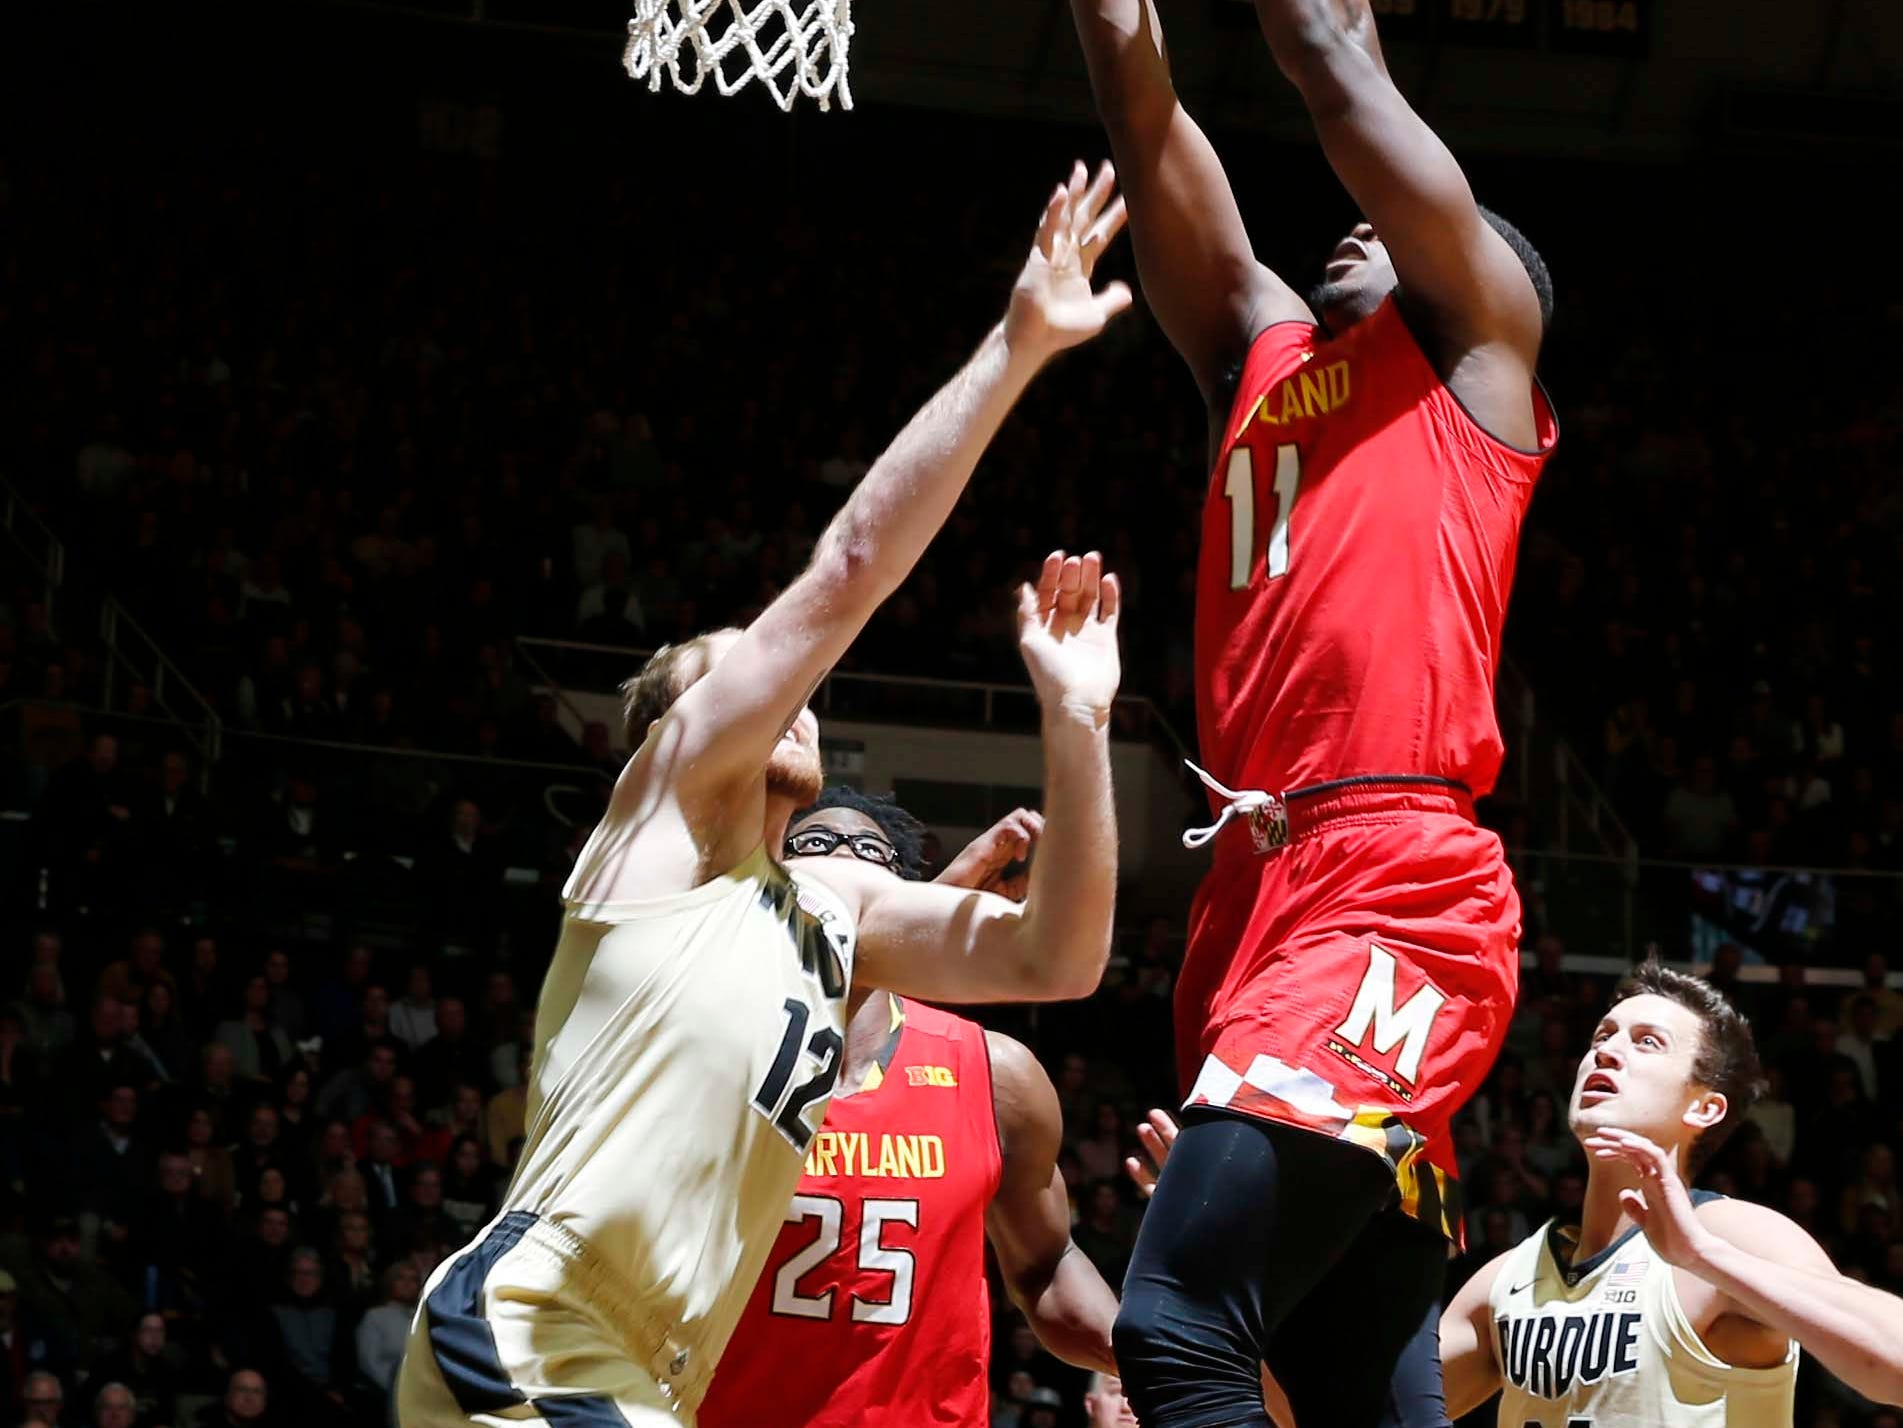 Dec 6, 2018; West Lafayette, IN, USA; Maryland Terrapins guard Darryl Morsell (11) takes a shot against Purdue Boilermakers forward Evan Boudreaux (12) during the first half at Mackey Arena. Mandatory Credit: Brian Spurlock-USA TODAY Sports